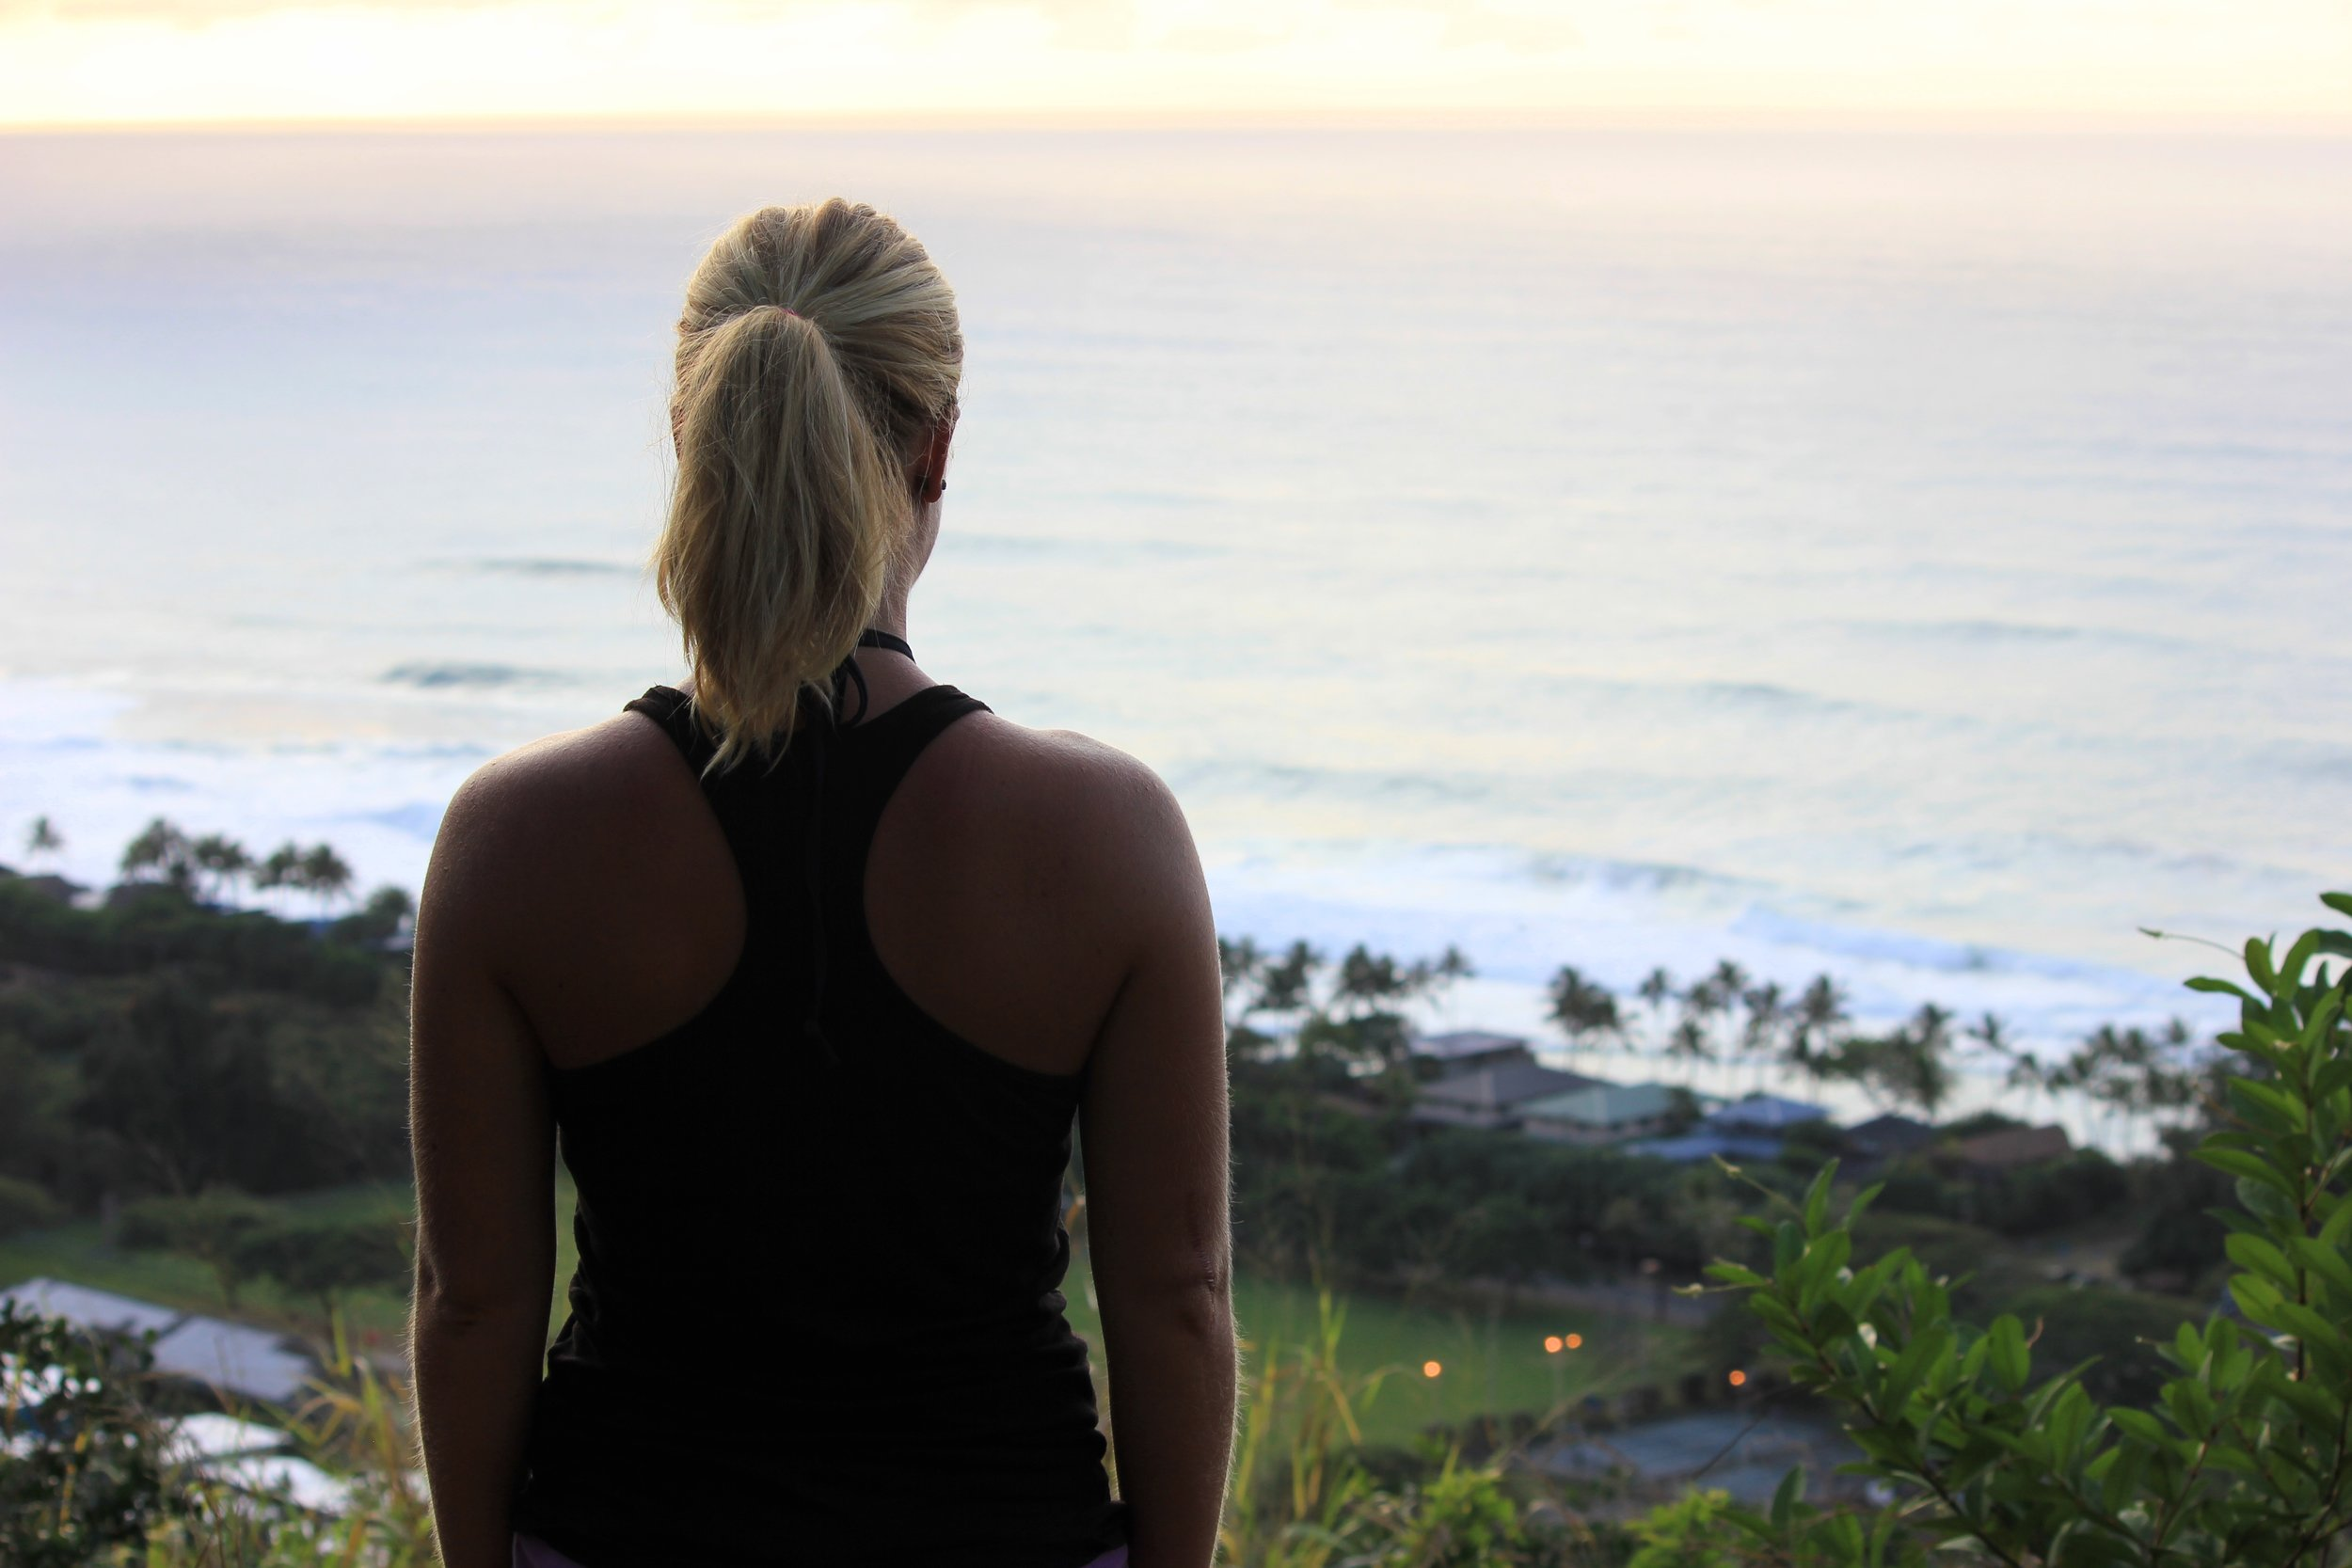 How I overcame my body image issues through traveling - Plus my favorite tricks to stay healthy on the road!